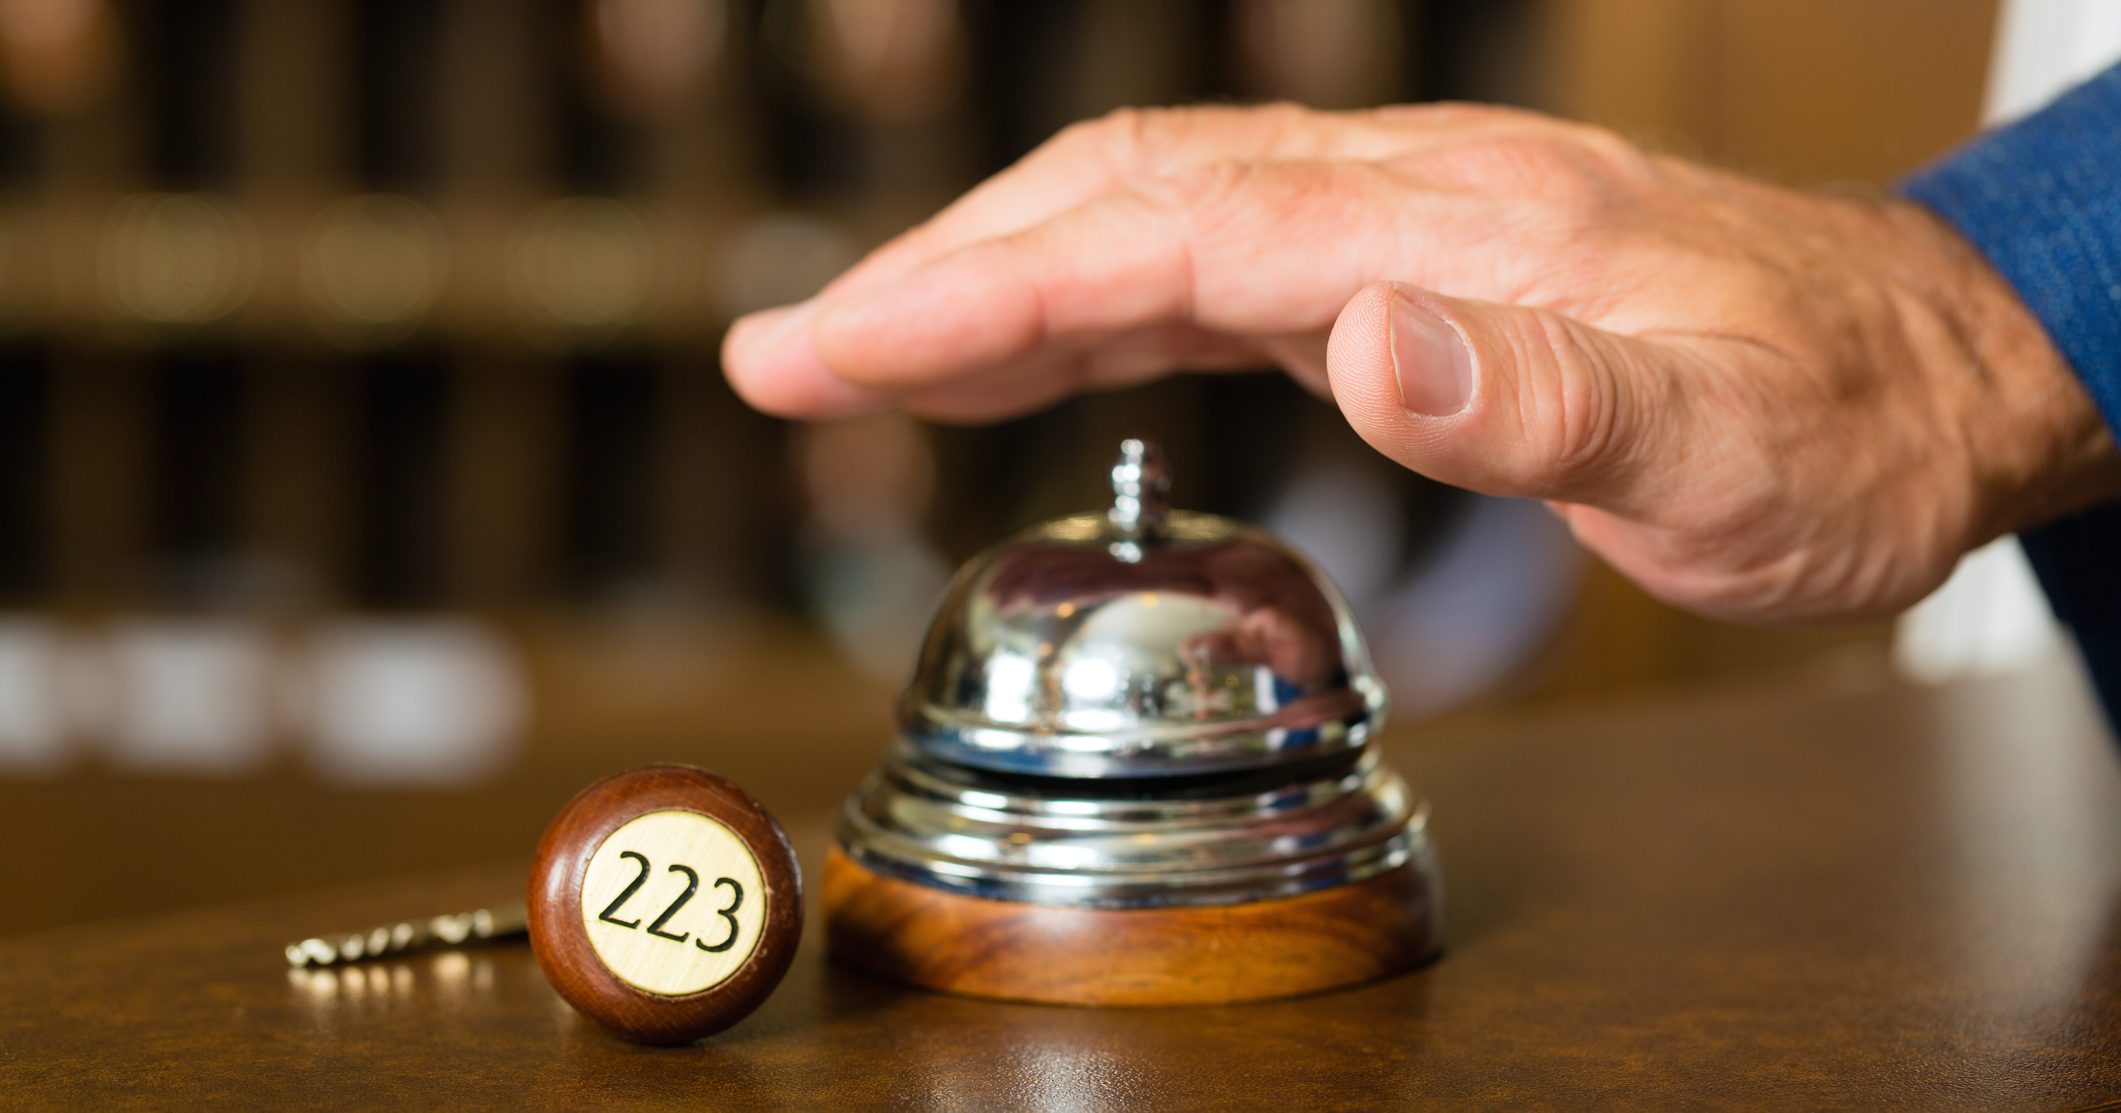 A hand over a bell